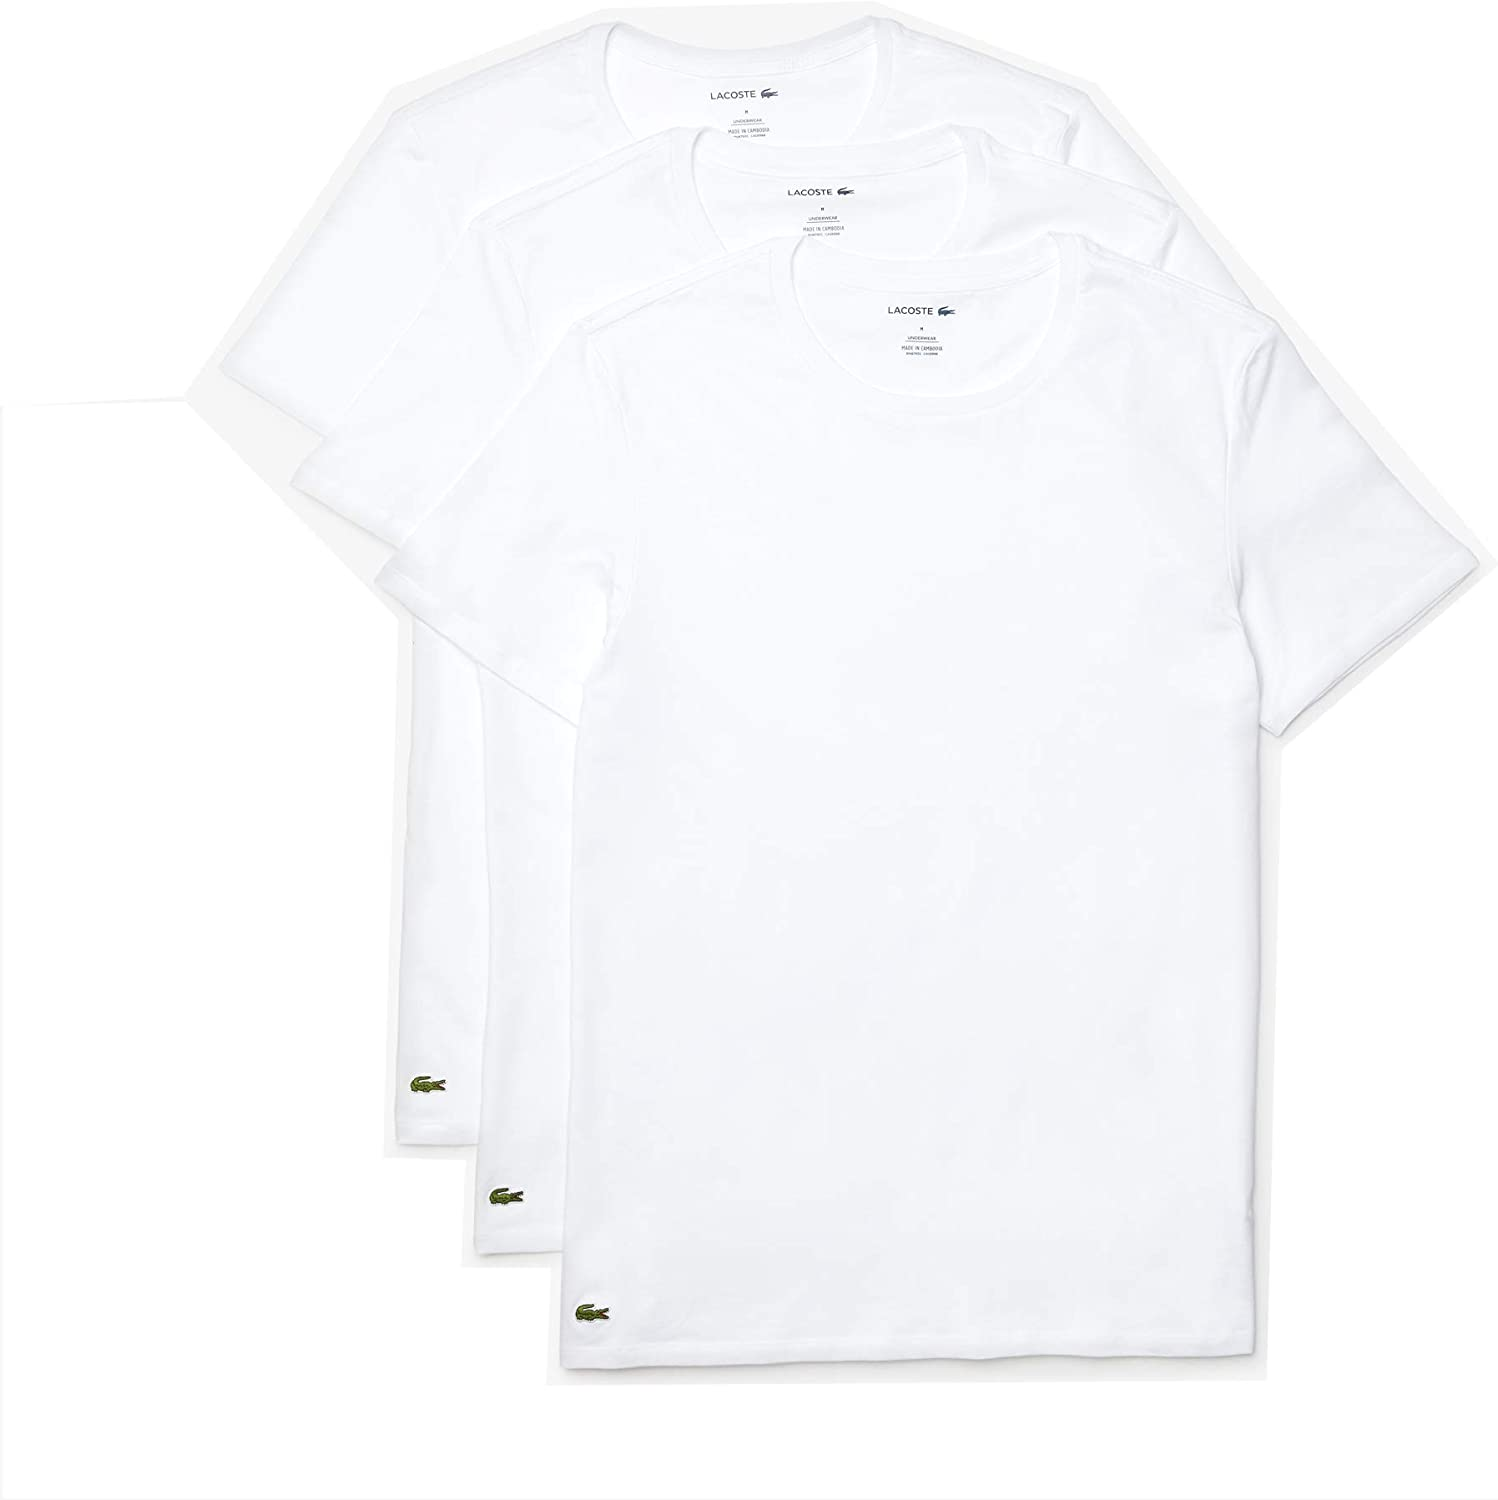 Lacoste Mens Essentials 3 Pack 100/% Cotton Regular Fit Crew Neck T-Shirts Base Layer Top